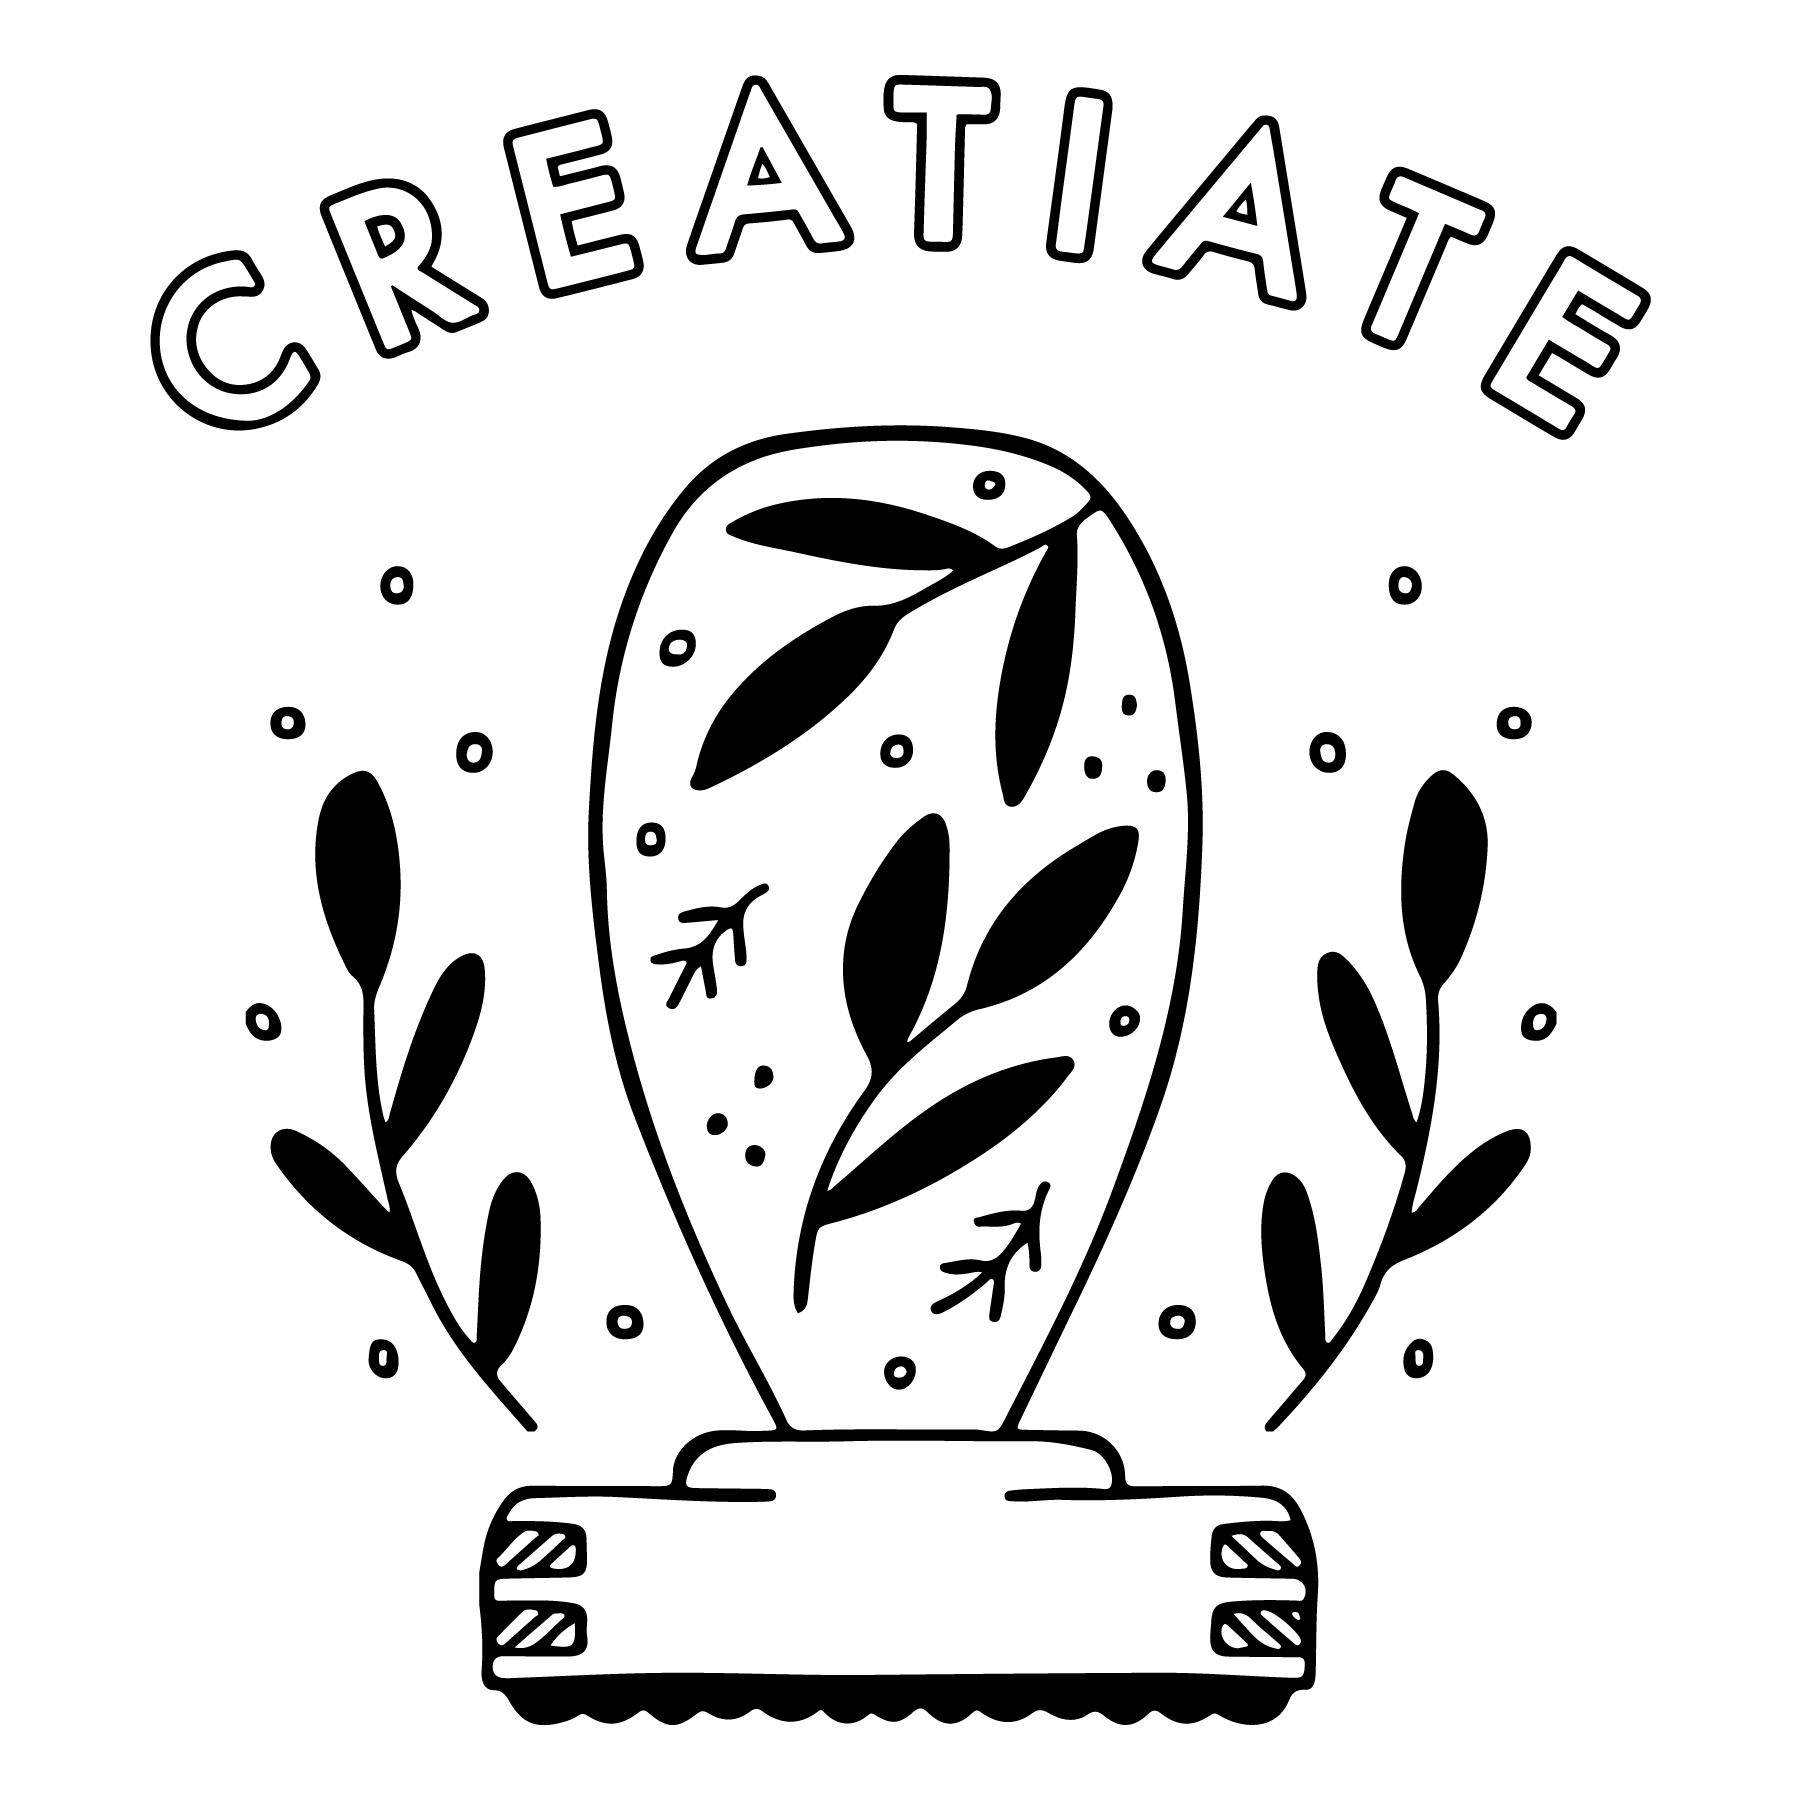 Creatiate Rubber Stamps Branding Icon Logo-02.png